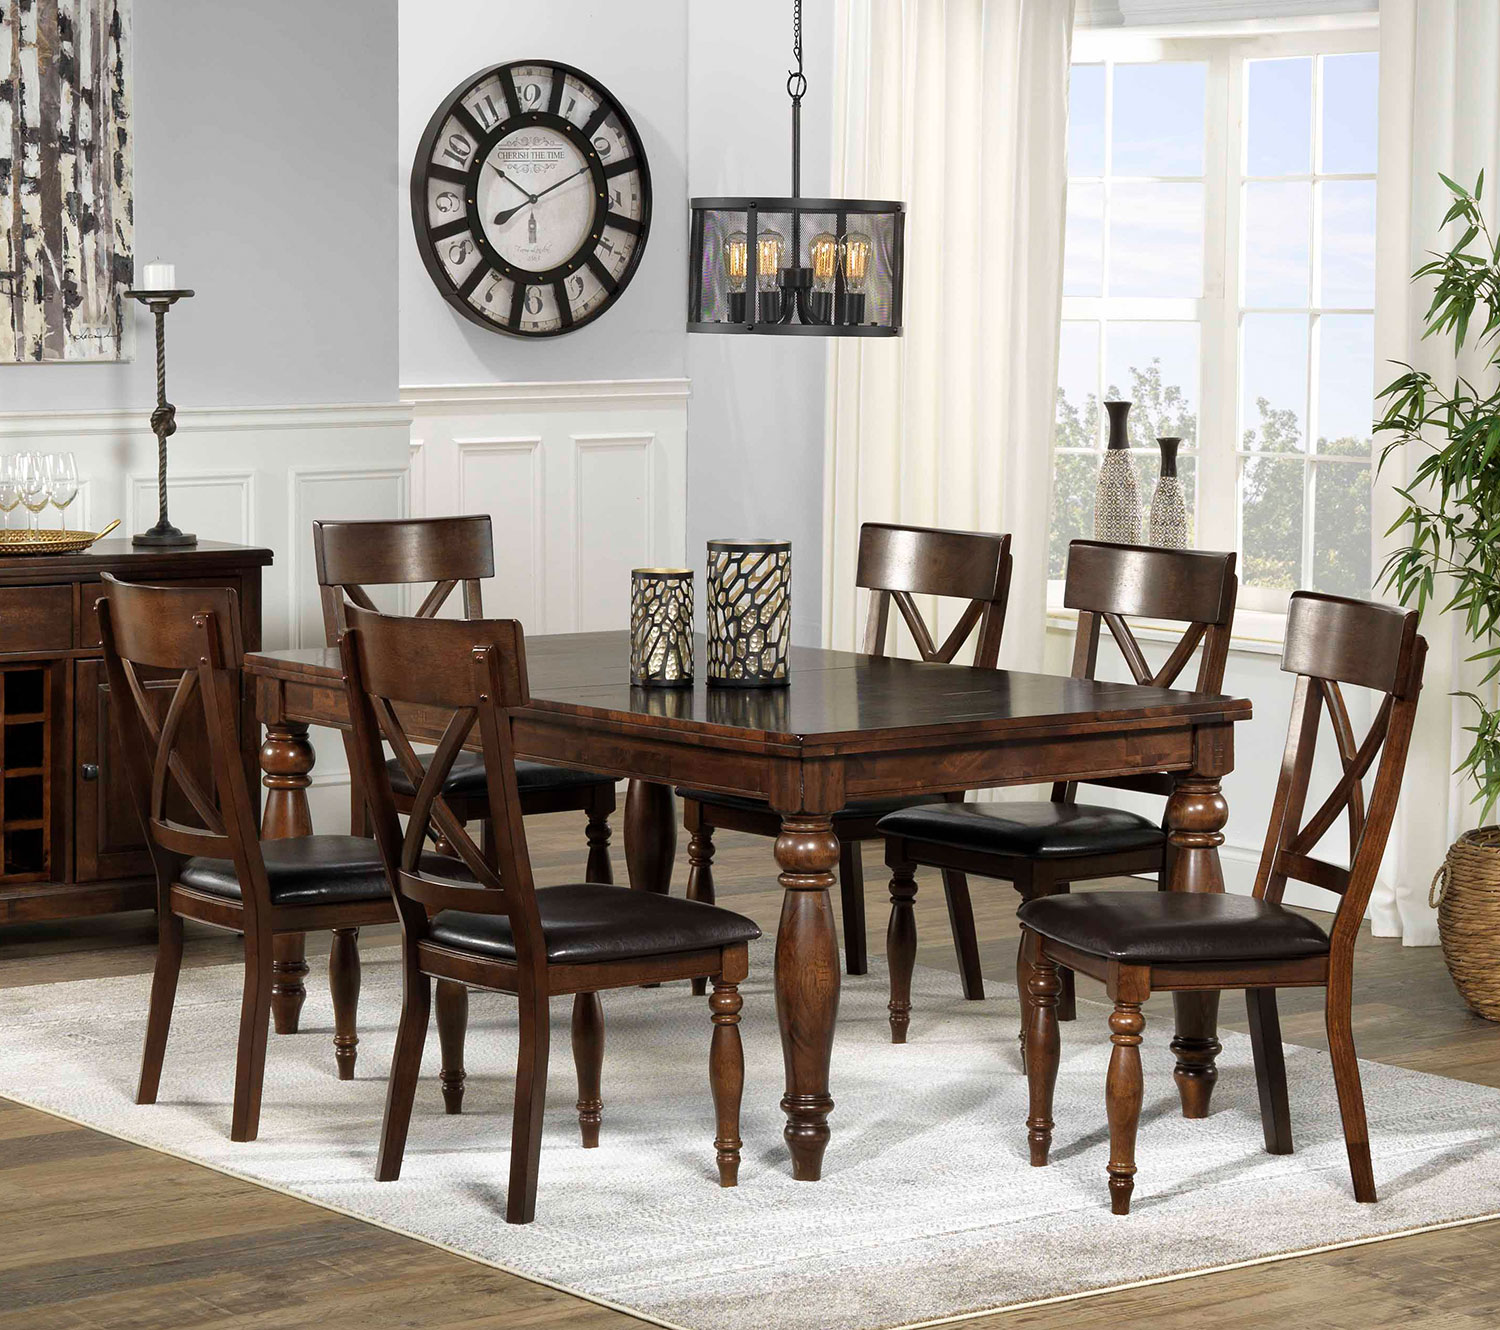 Pictures For Dining Room: Kingstown 7-Piece Dining Room Set - Chocolate